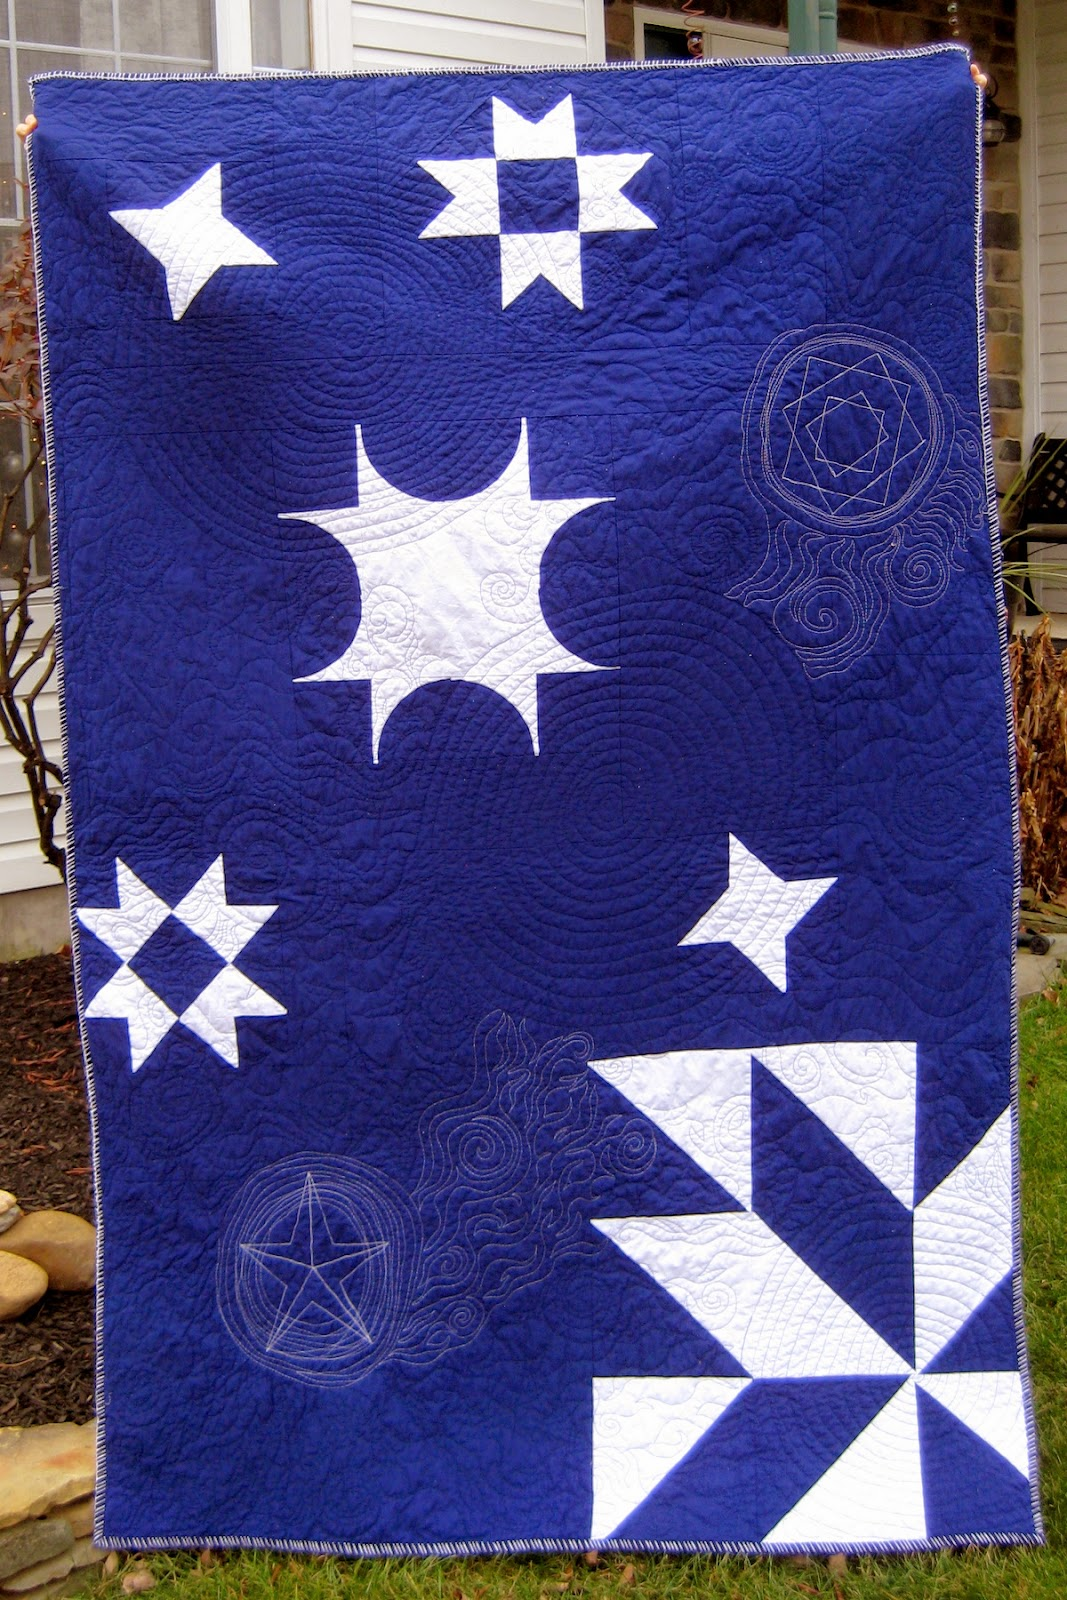 http://quiltyhabit.blogspot.com/2014/12/shirleys-stars-tribute-to-my-grandmother.html